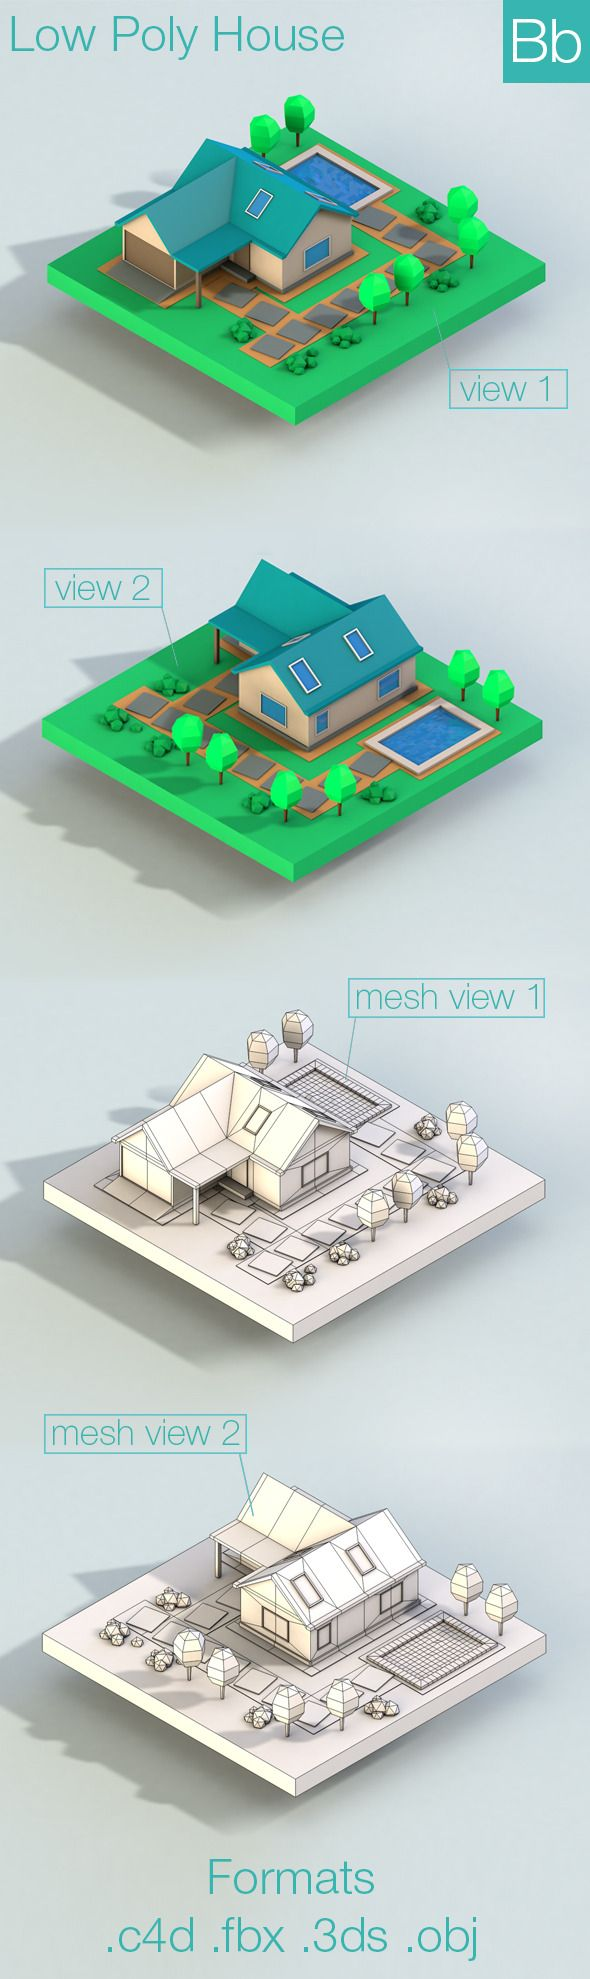 Best Isometric Indoor Model Images On   Isometric